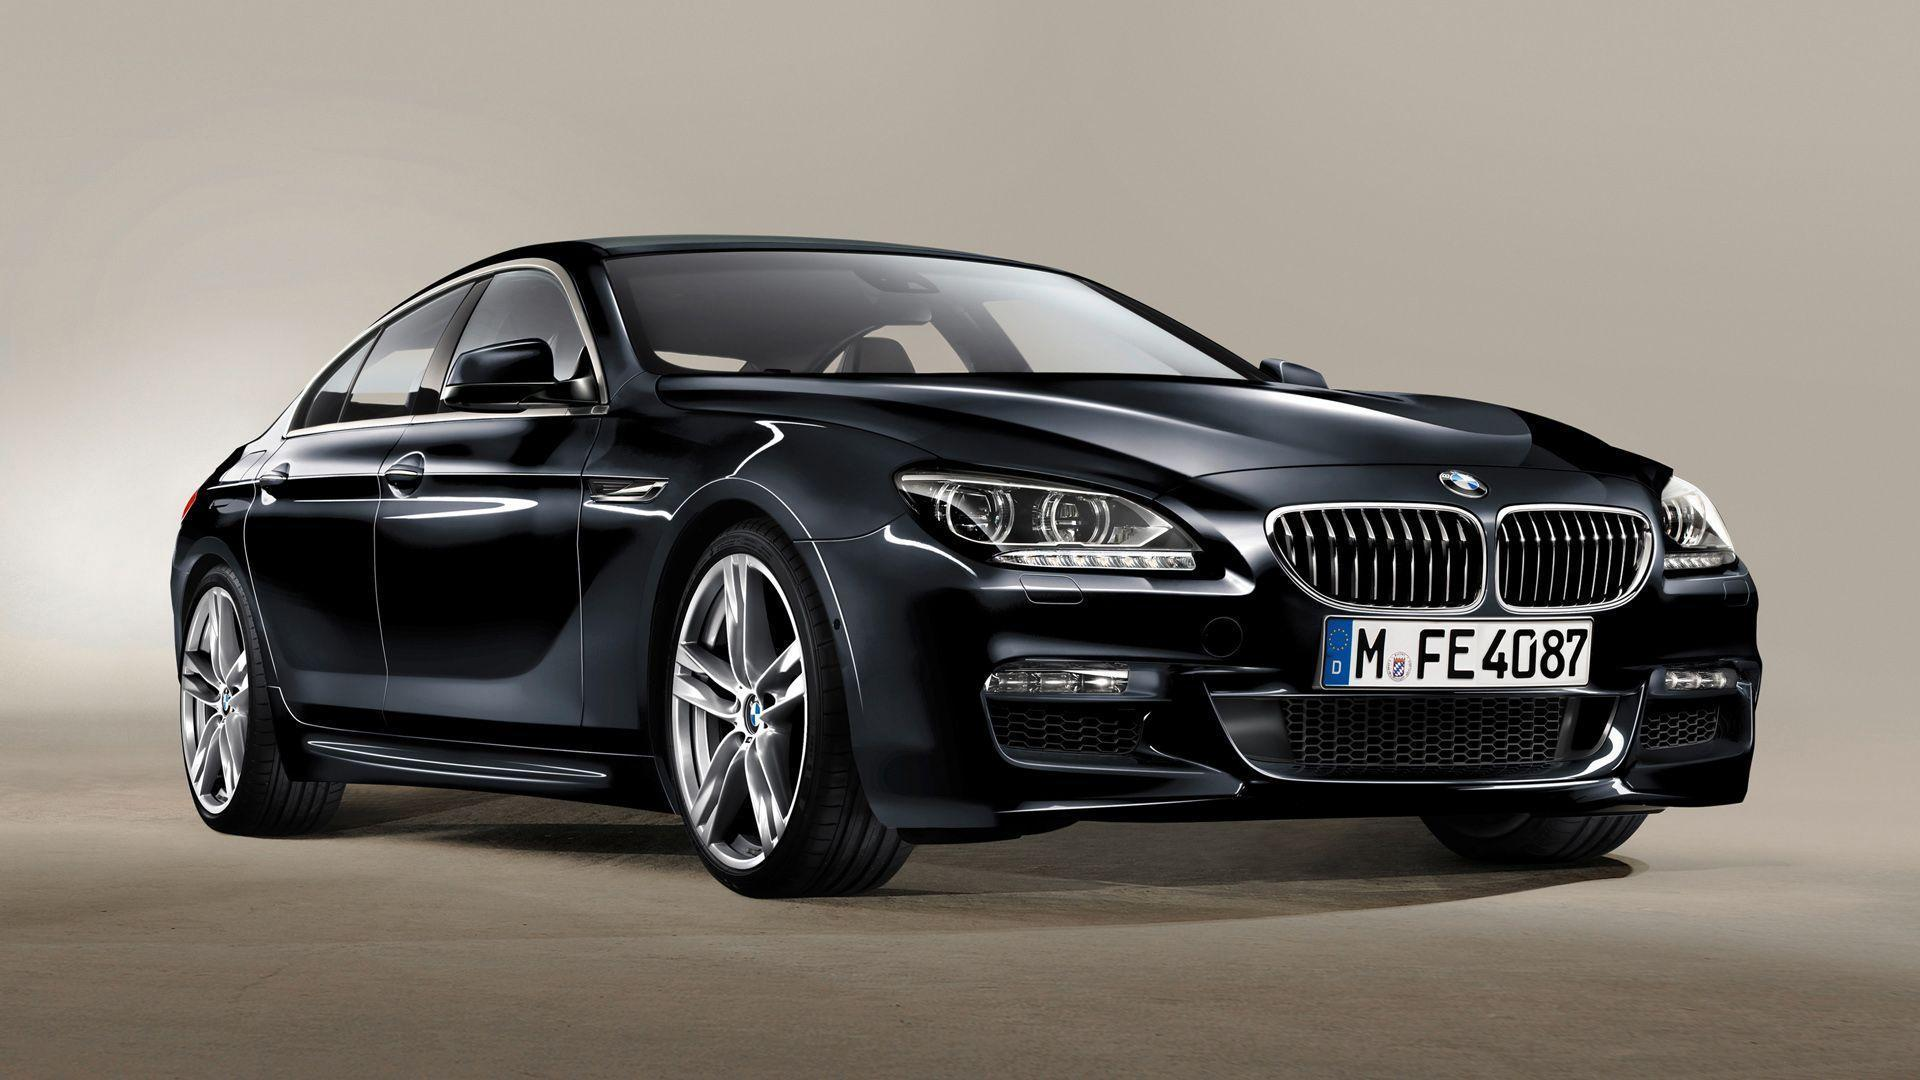 34 Best Free Bmw Cars Wallpapers Wallpaperaccess